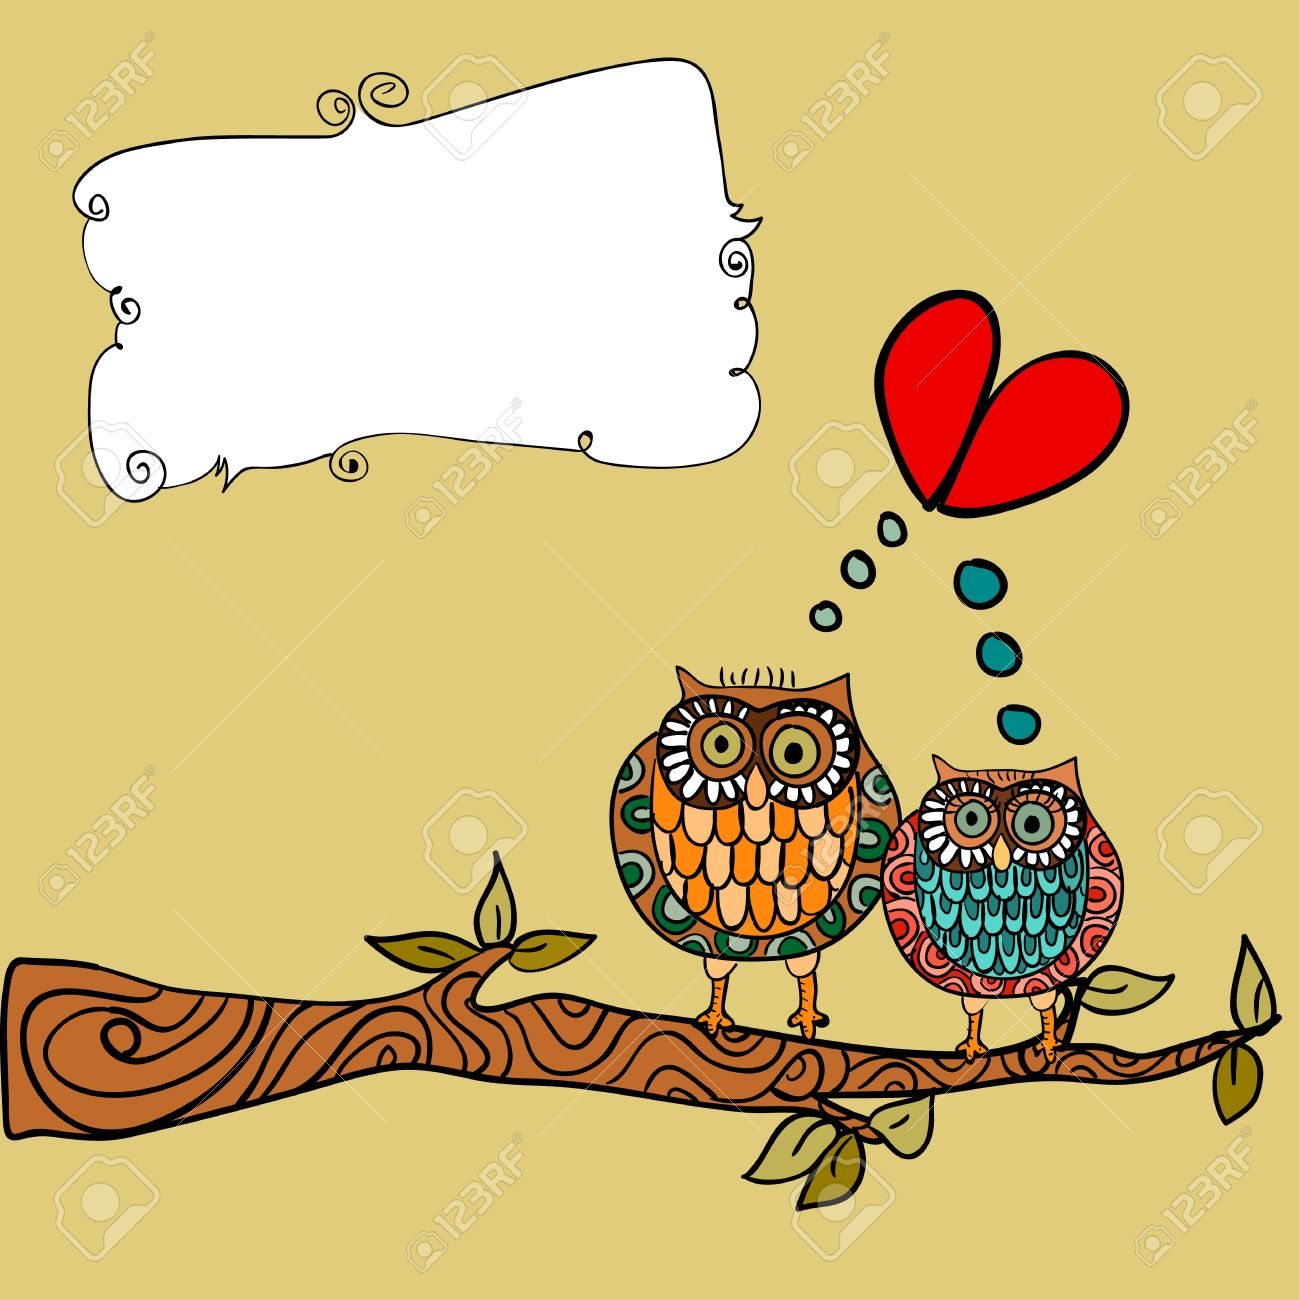 Valentine day lovely owls couple in tree branch greeting card background. Vector illustration layered for easy manipulation and custom coloring. Stock Vector - 17878158